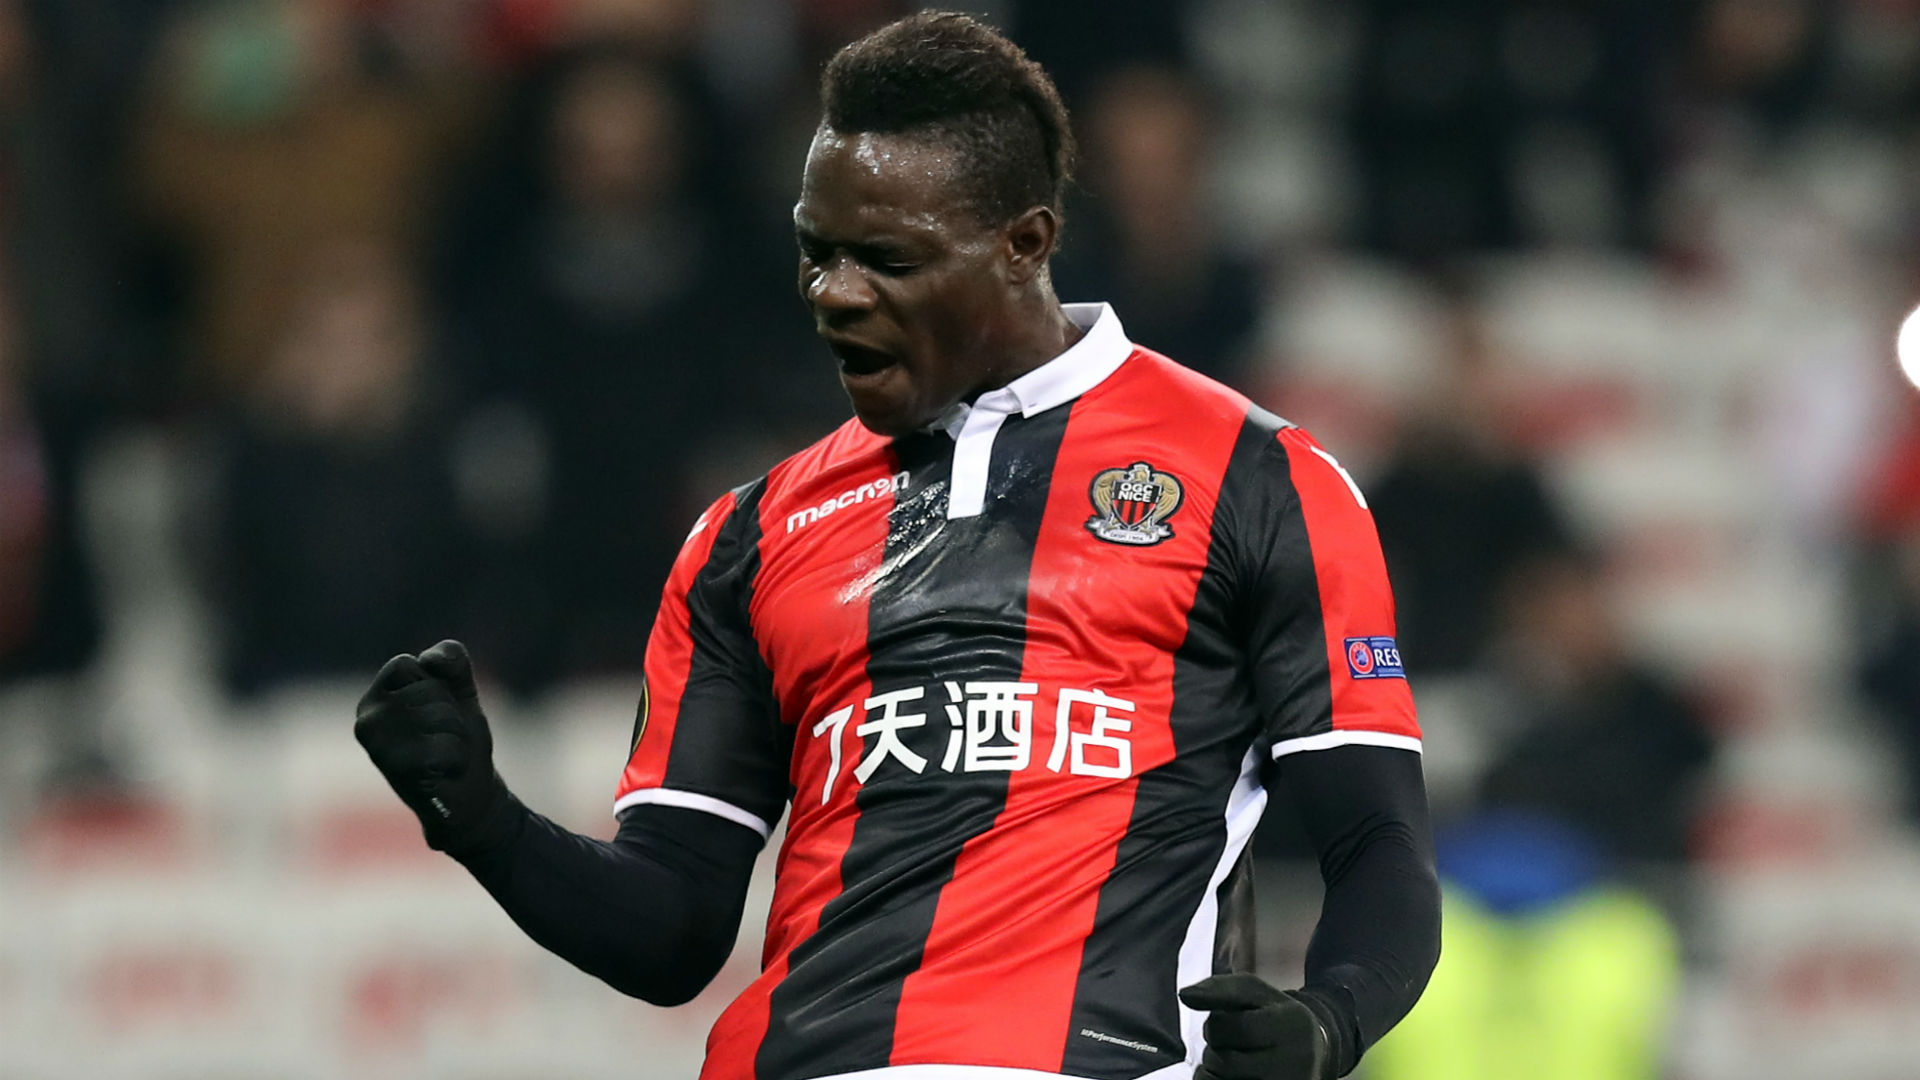 Balotelli staying at Nice